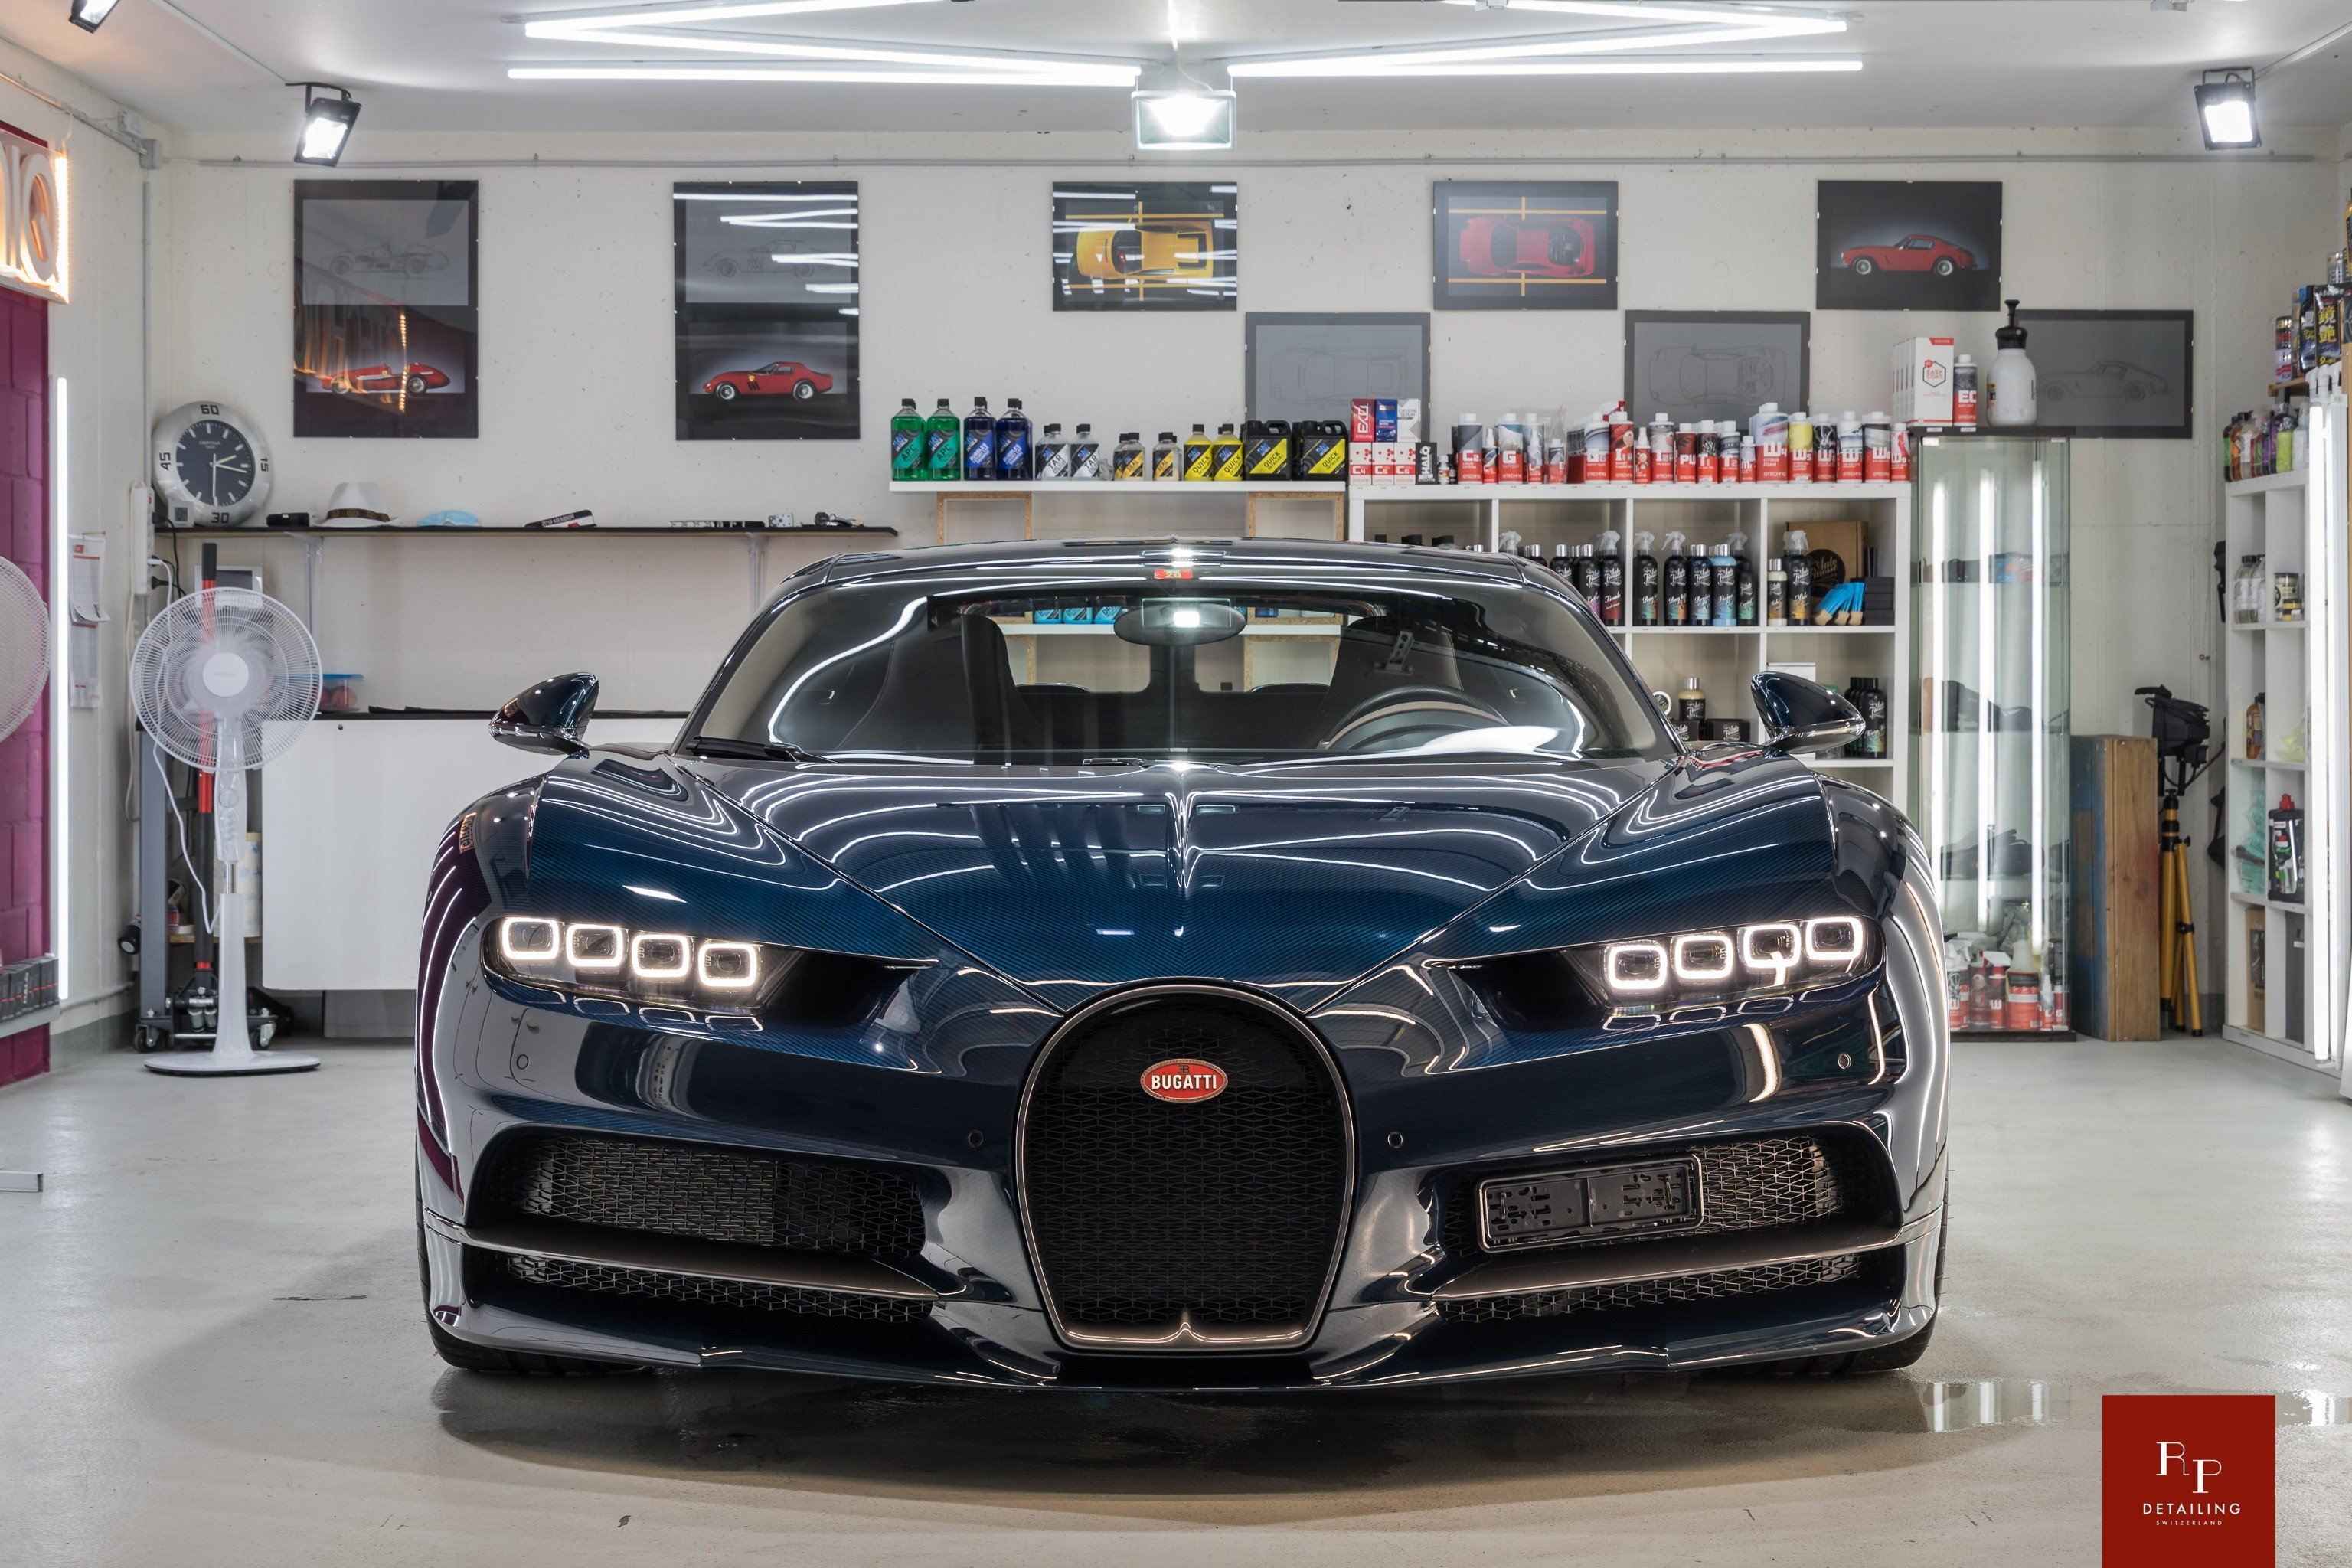 The Bugatti Chiron by RP-DETAILING